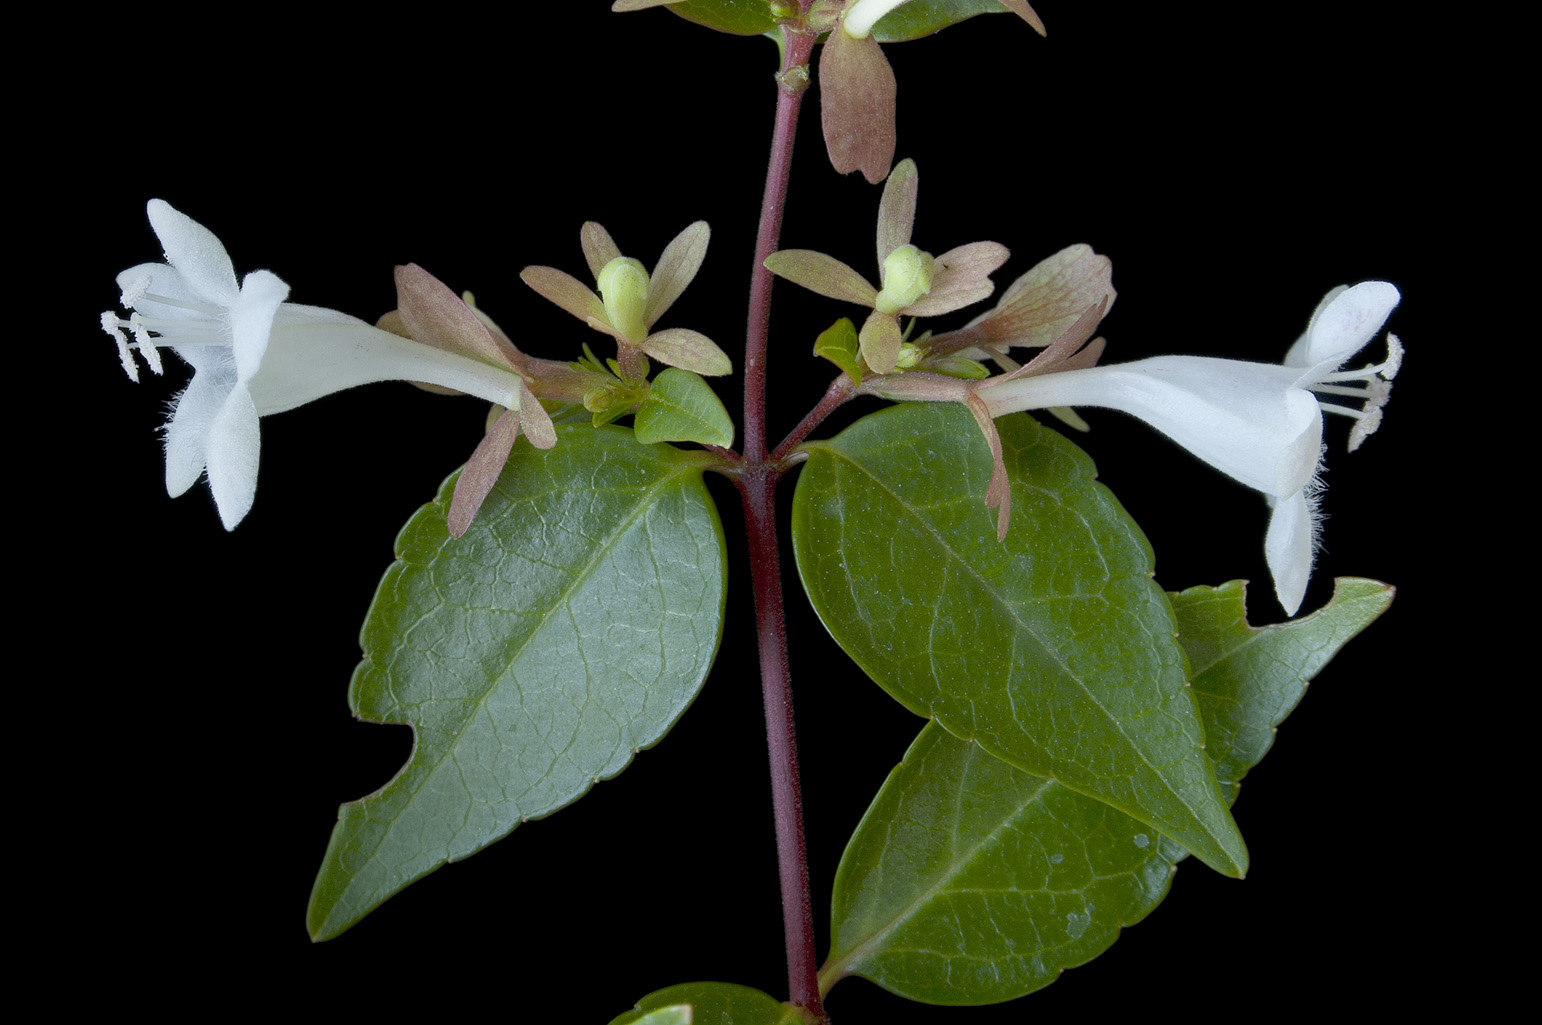 Branch with 2 flowers with a white infundibular corolla and a calyx  with 4 pink-brownish divergent sepals